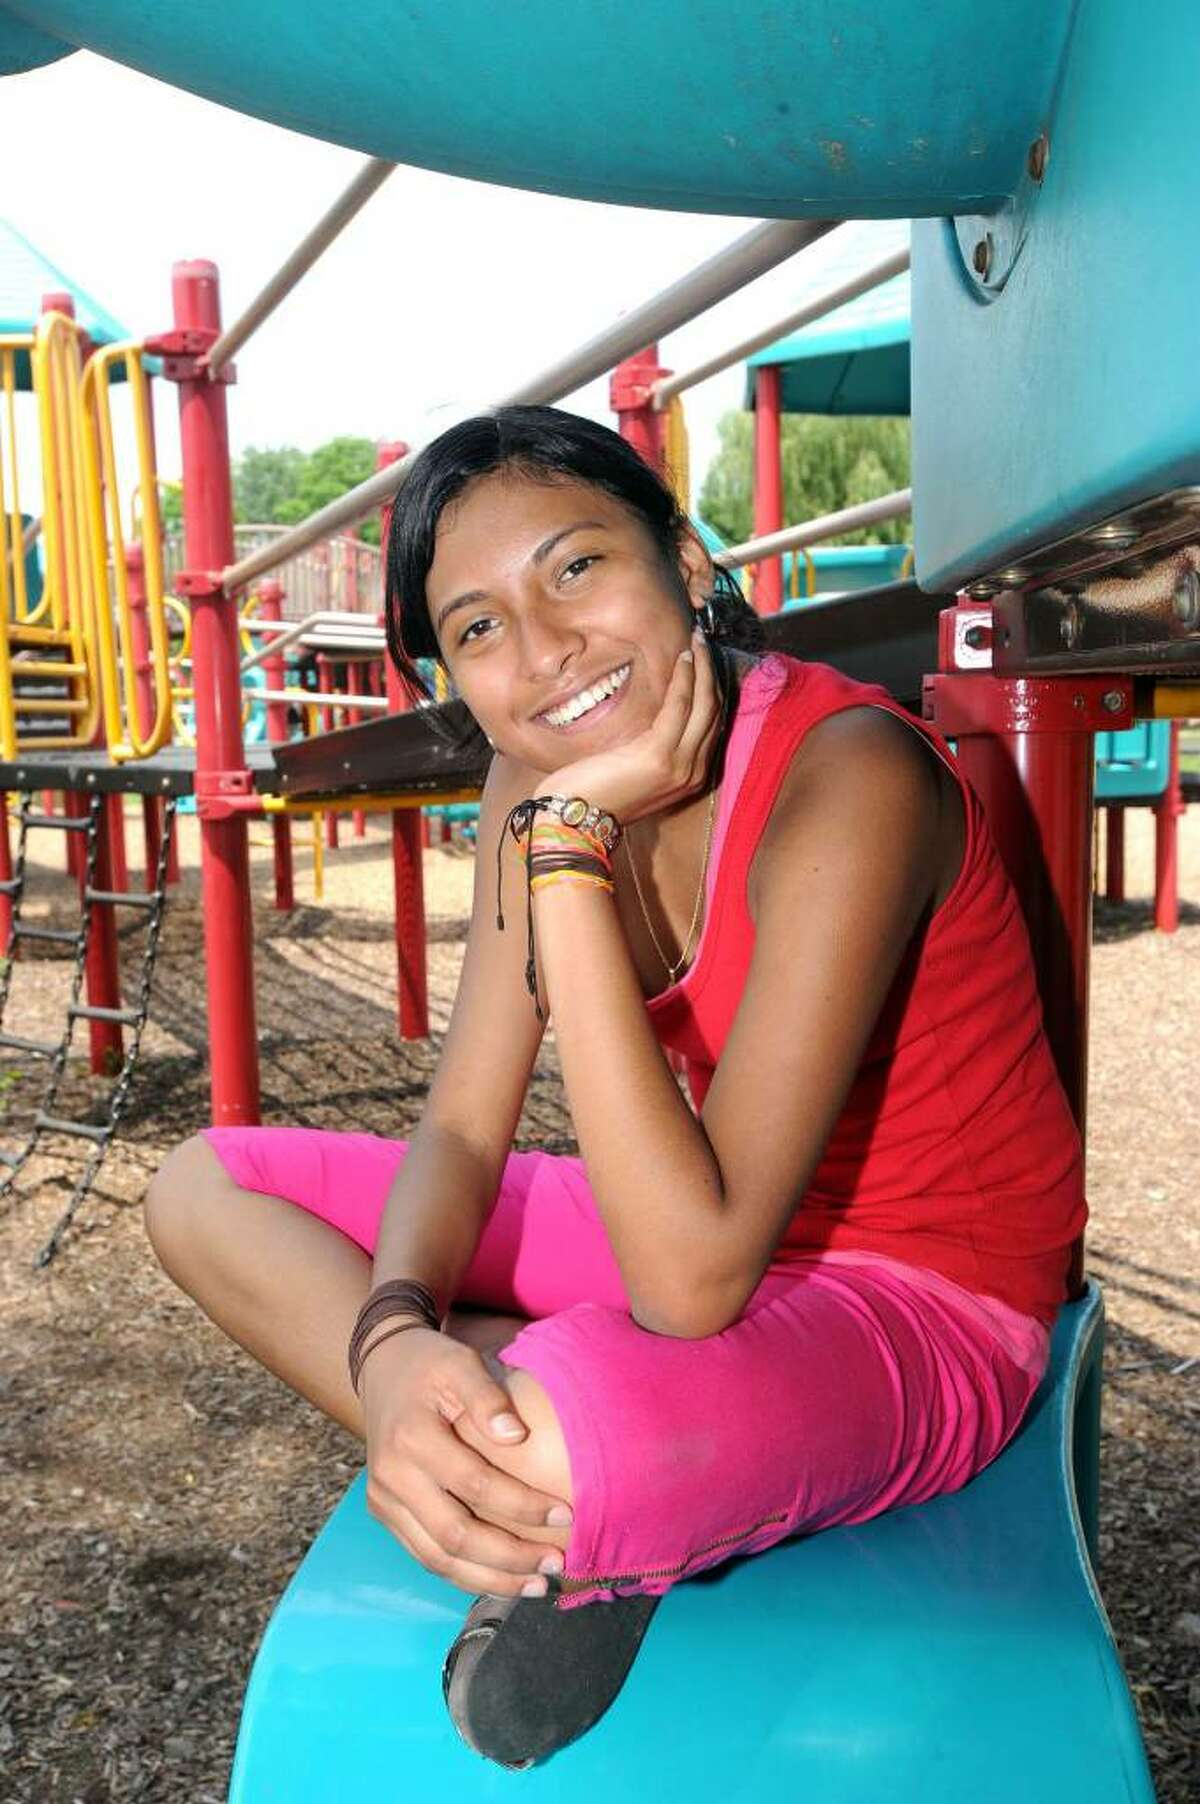 """Jennifer Hernandes, 15, of Danbury, moved to the U.S. from Nicaraqua a year and a half ago. """"America for me means my second home, a country of opportunity where I can progress in this country to be a professional, and in that way help my family."""